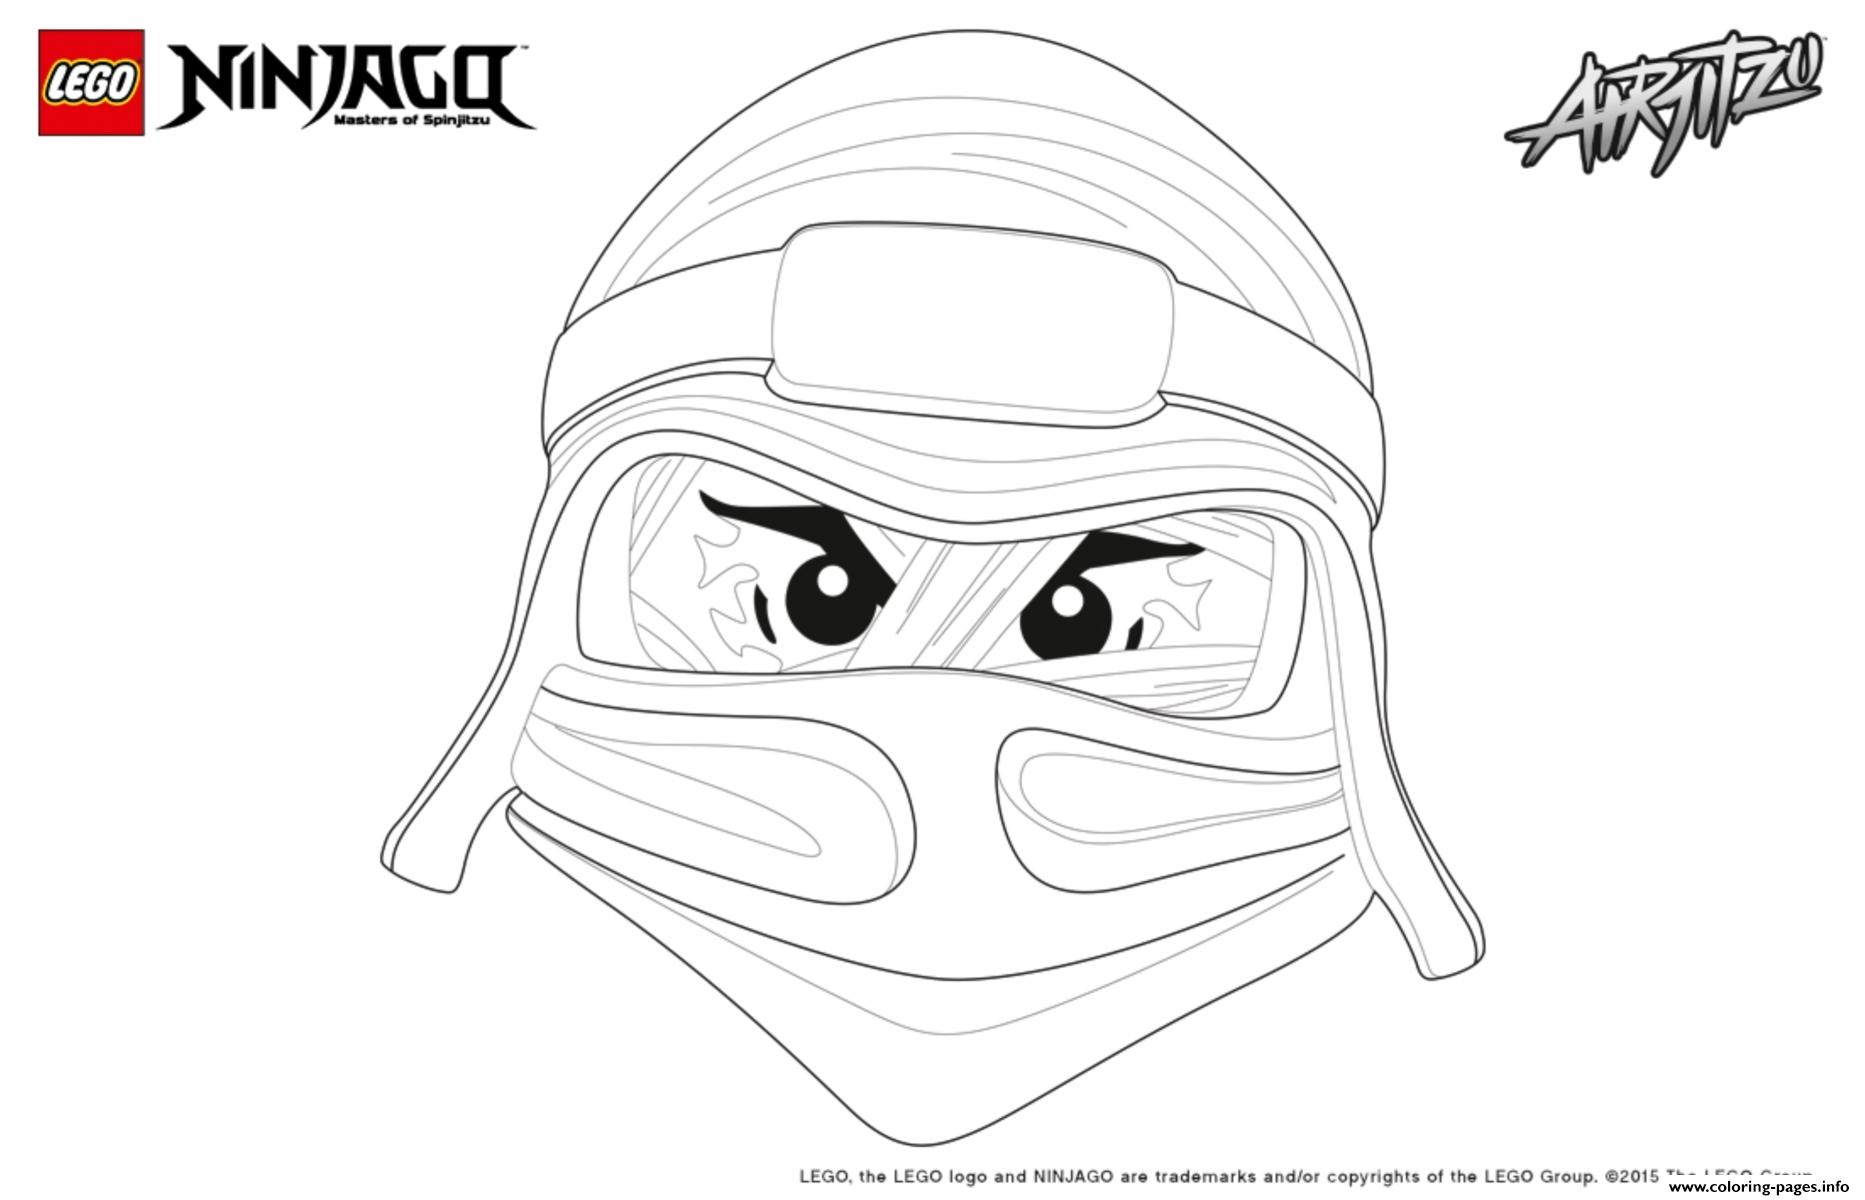 ninjago lego lloyd  coloring pages